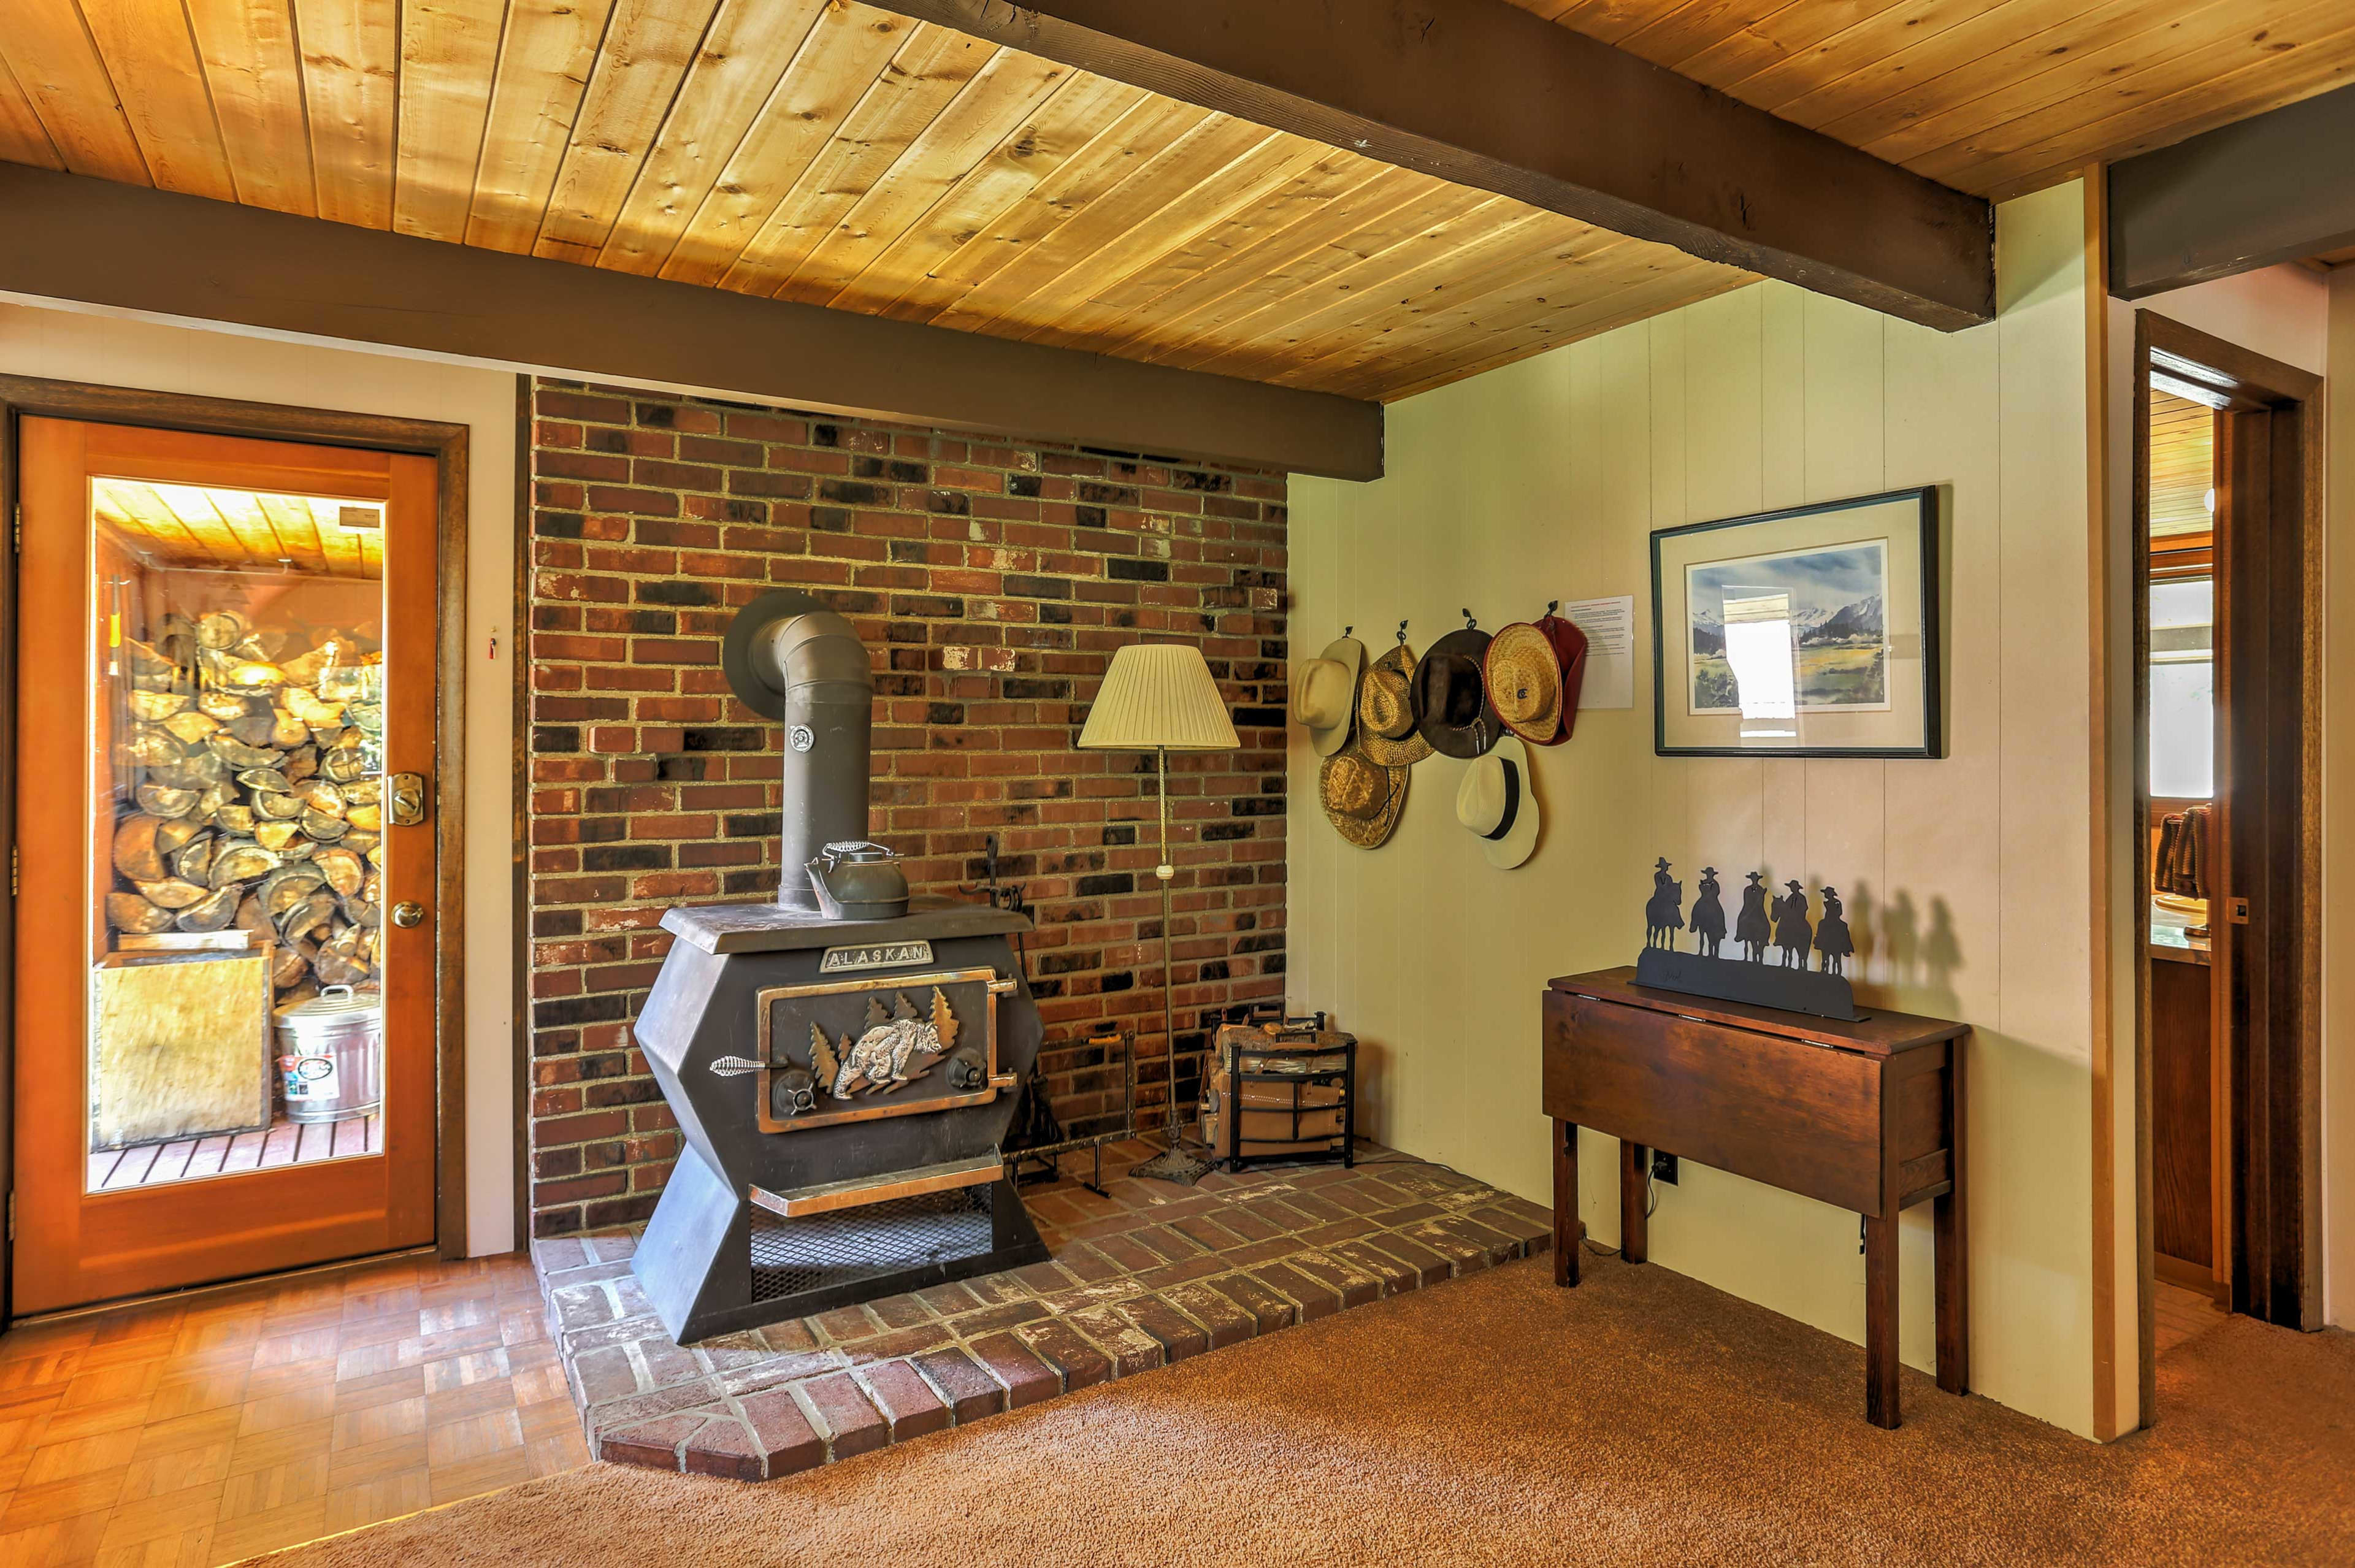 Stay warm by the wood-burning stove.